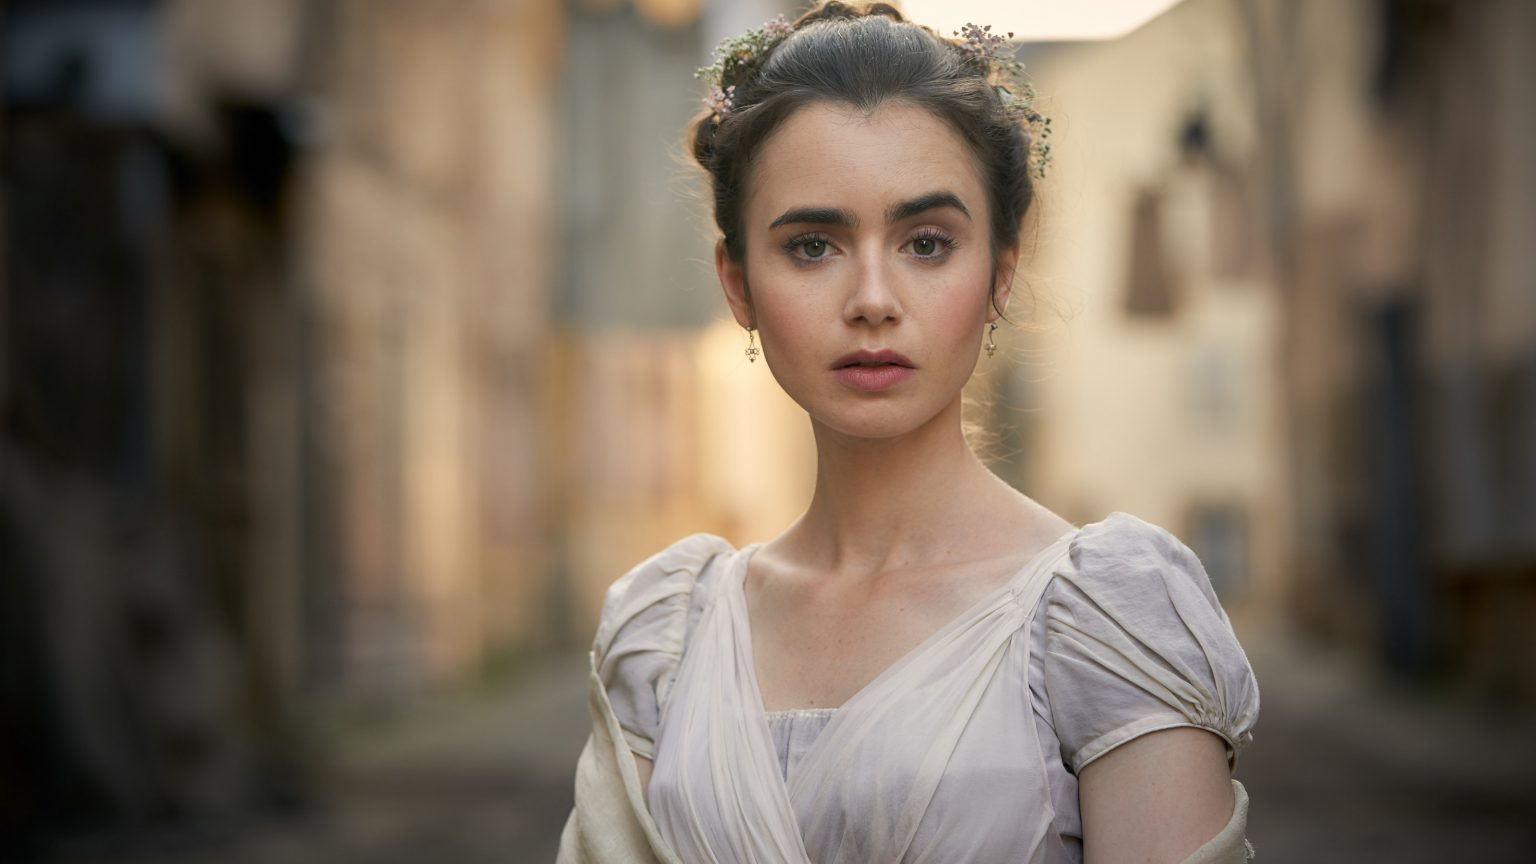 'Les Misérables' Trailer: Victor Hugo Fans Who Don't Like Musicals Get Their Day